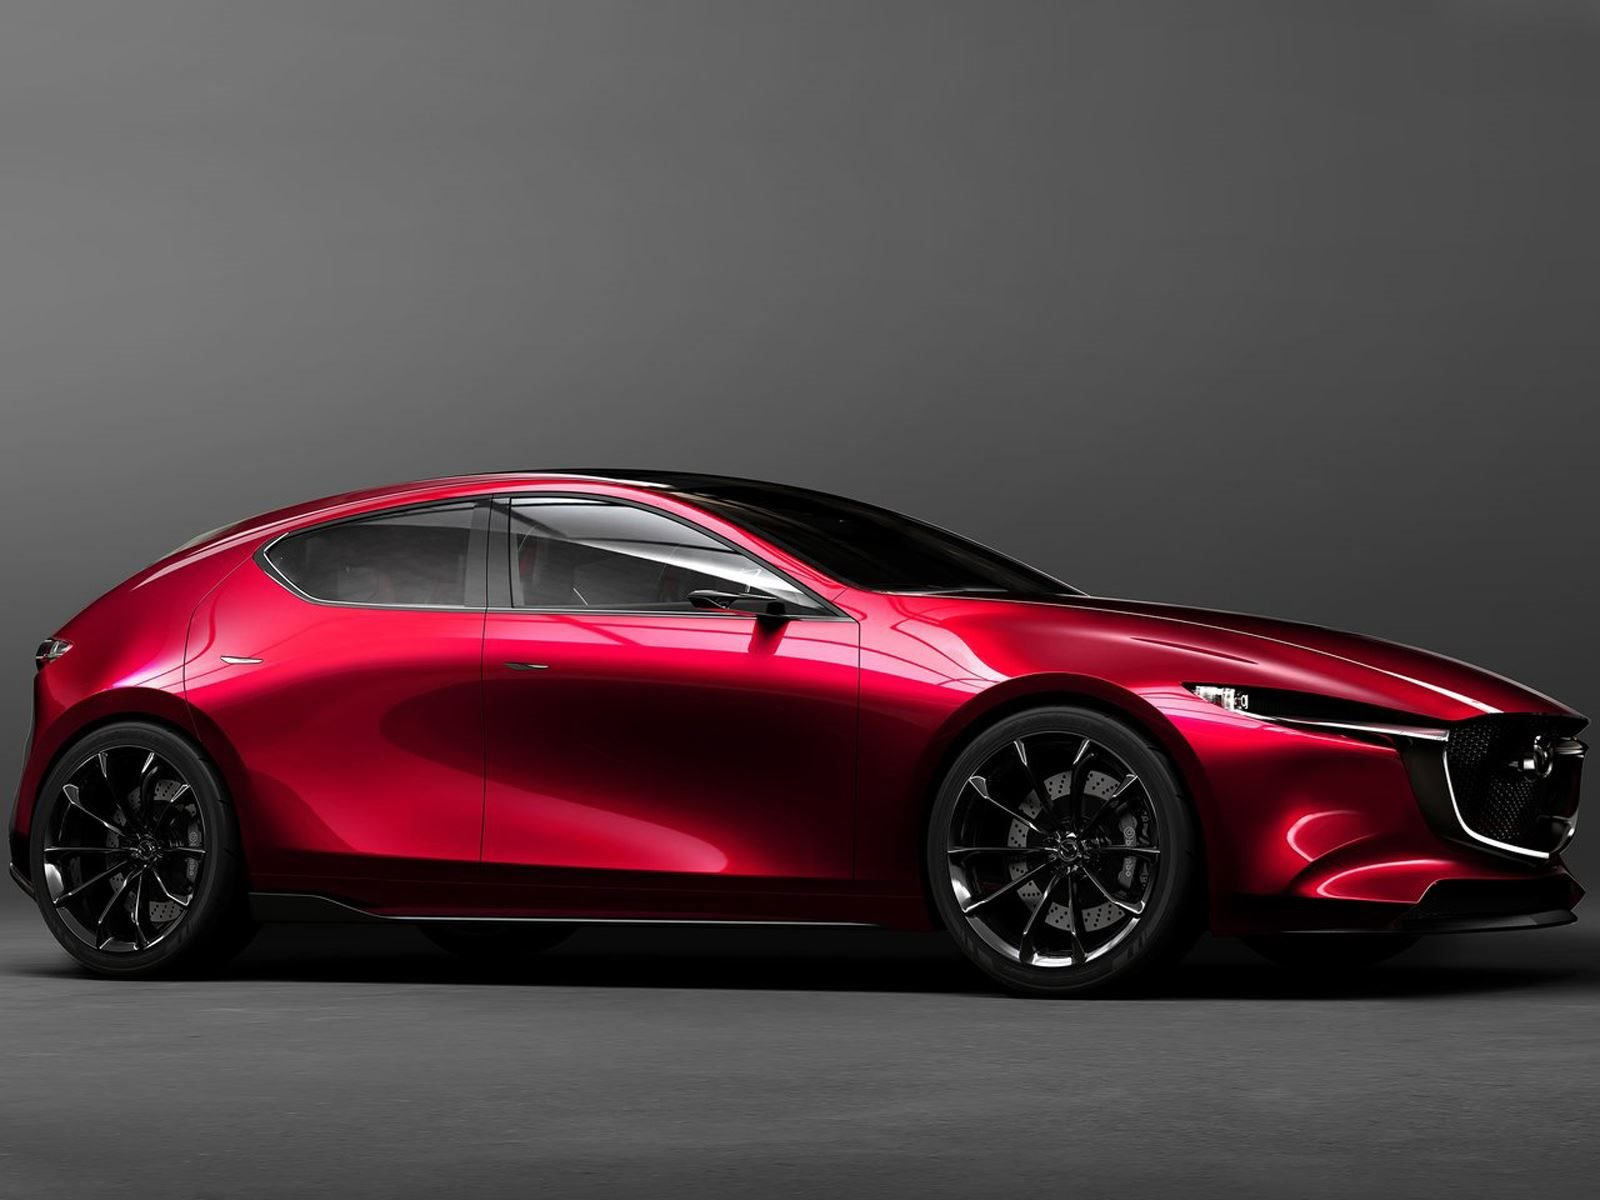 The Next Mazda 3 Will Debut In La And It S Going To Look Stunning